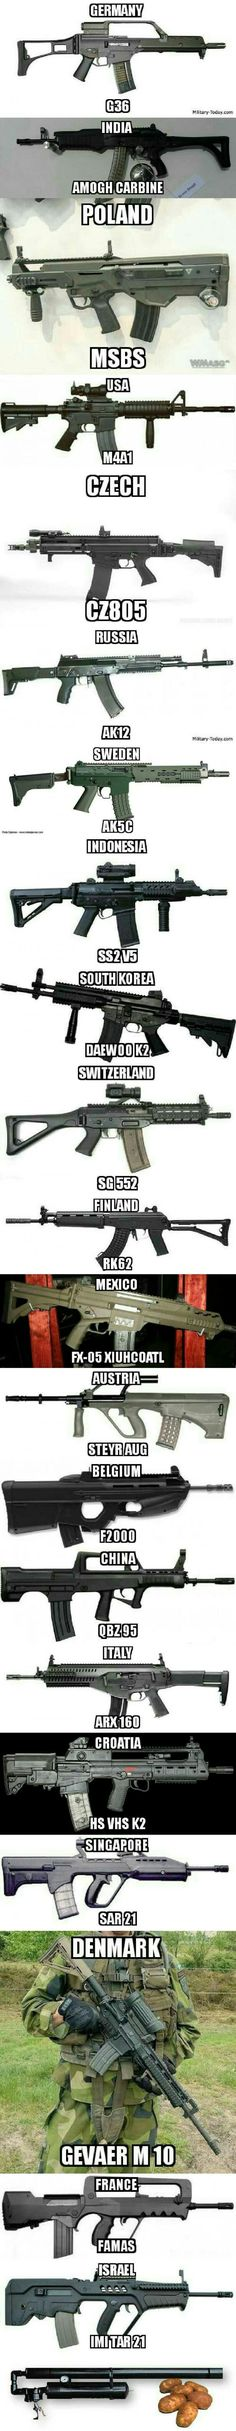 Assault rifles around the world part comment your country& assault rifle for part 2 Military Weapons, Weapons Guns, Guns And Ammo, Assault Weapon, Assault Rifle, Cool Guns, Airsoft, Firearms, Hand Guns